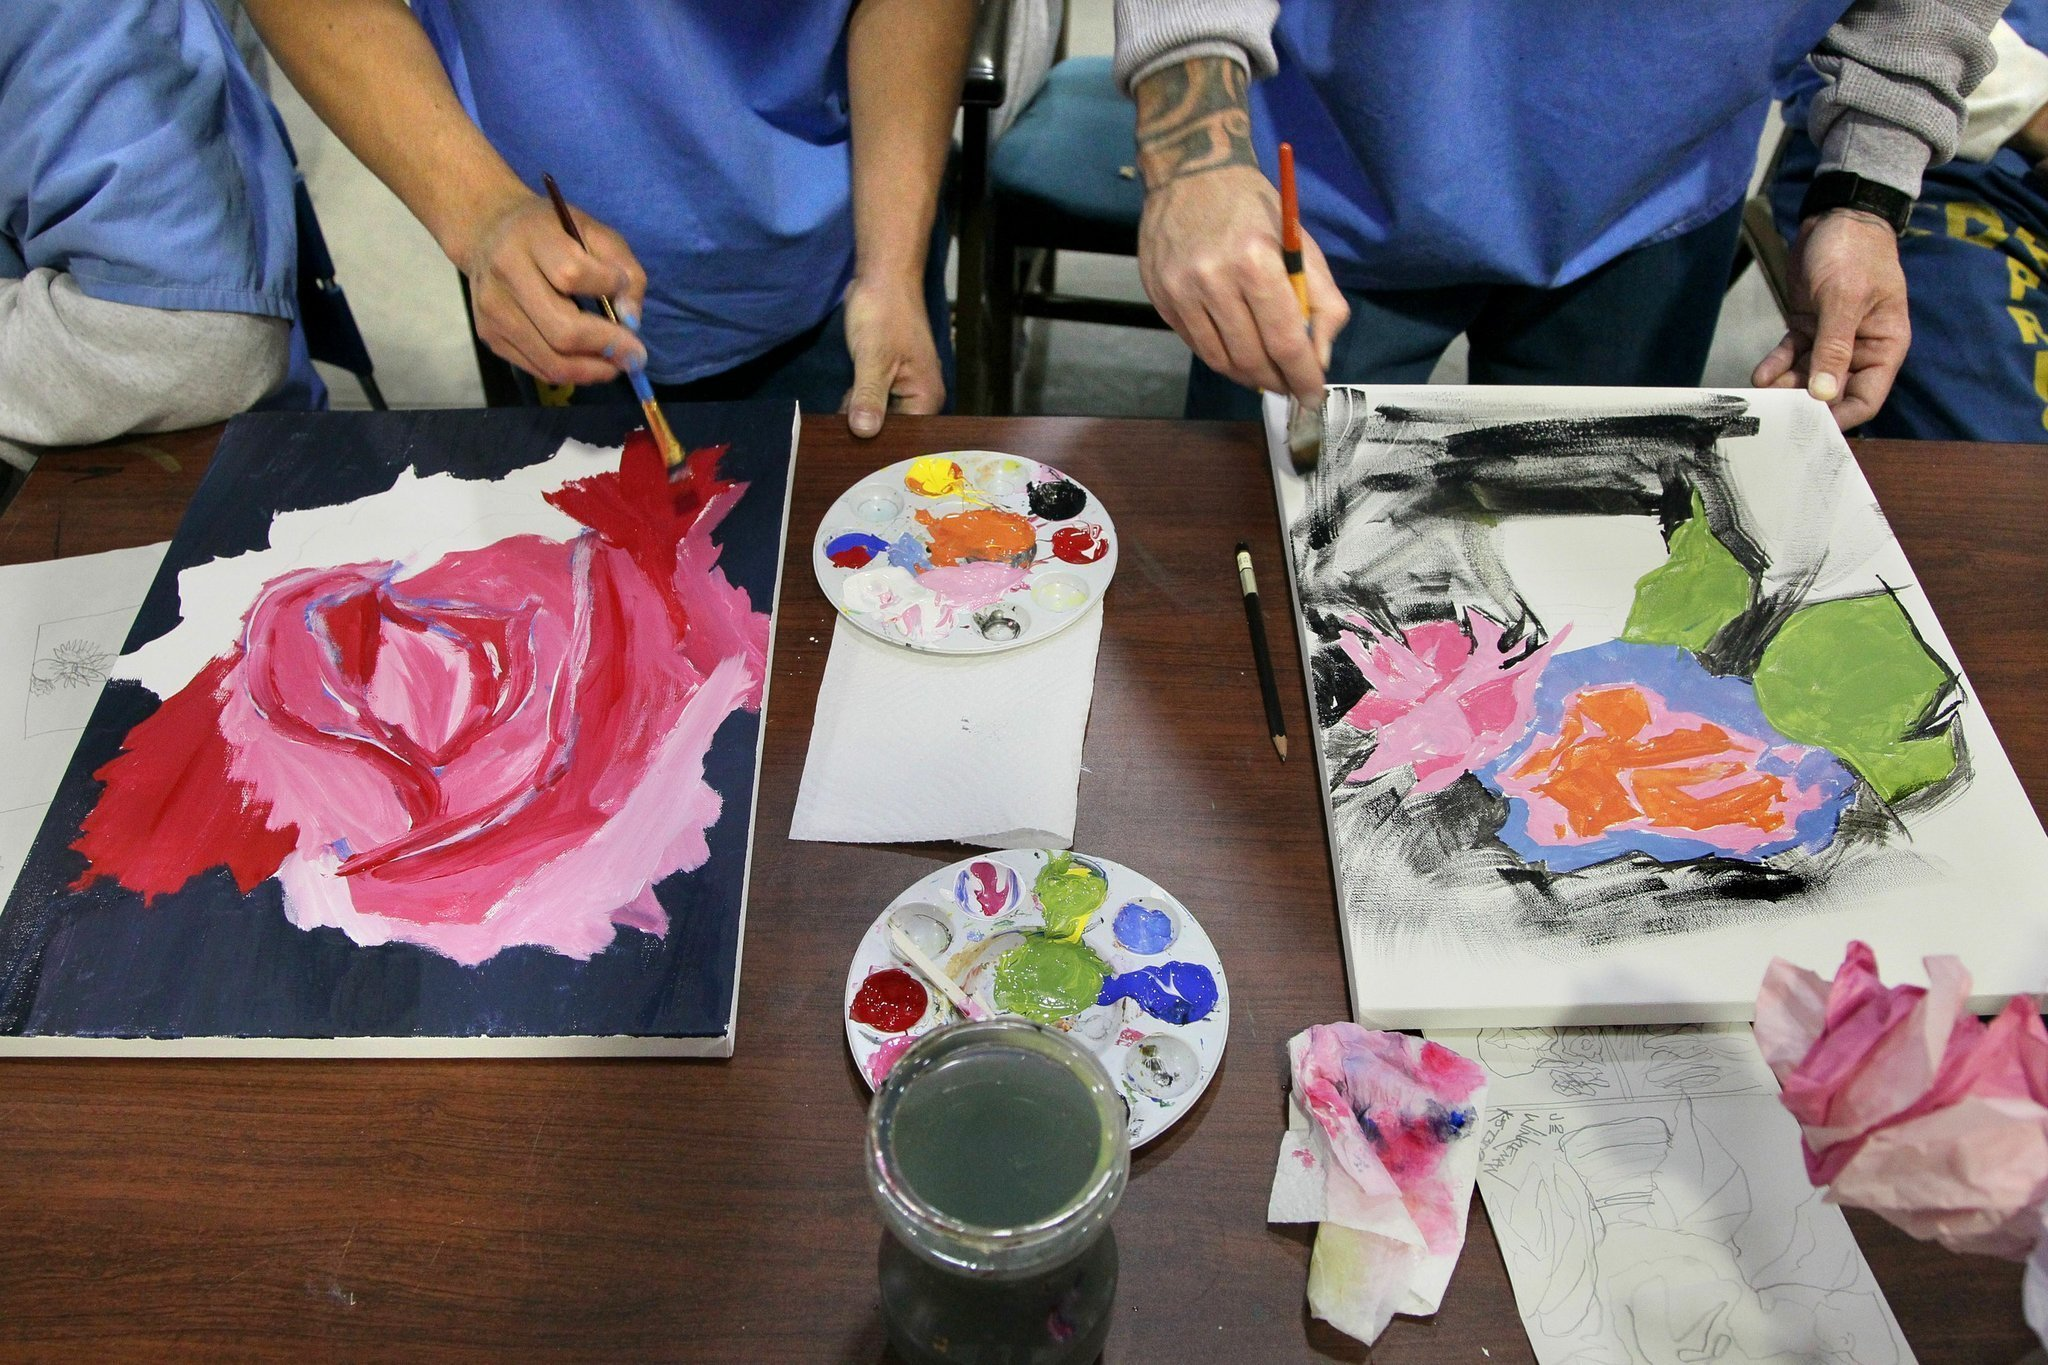 Miramar College professors art program helping inmates at